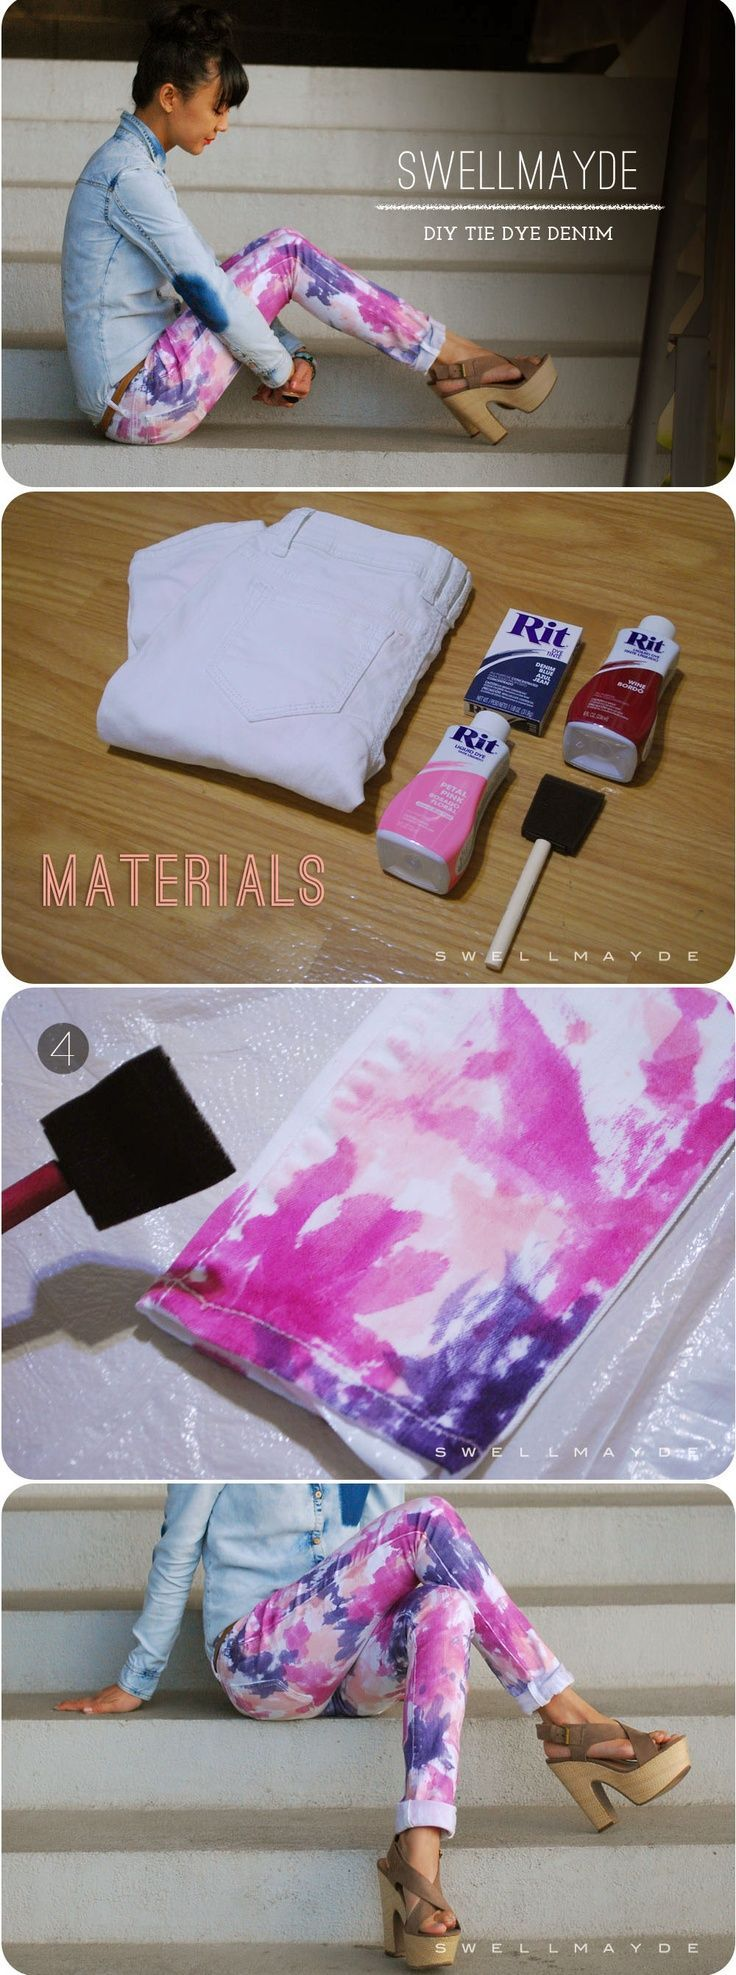 best clothes iud make images on pinterest hand crafts sewing